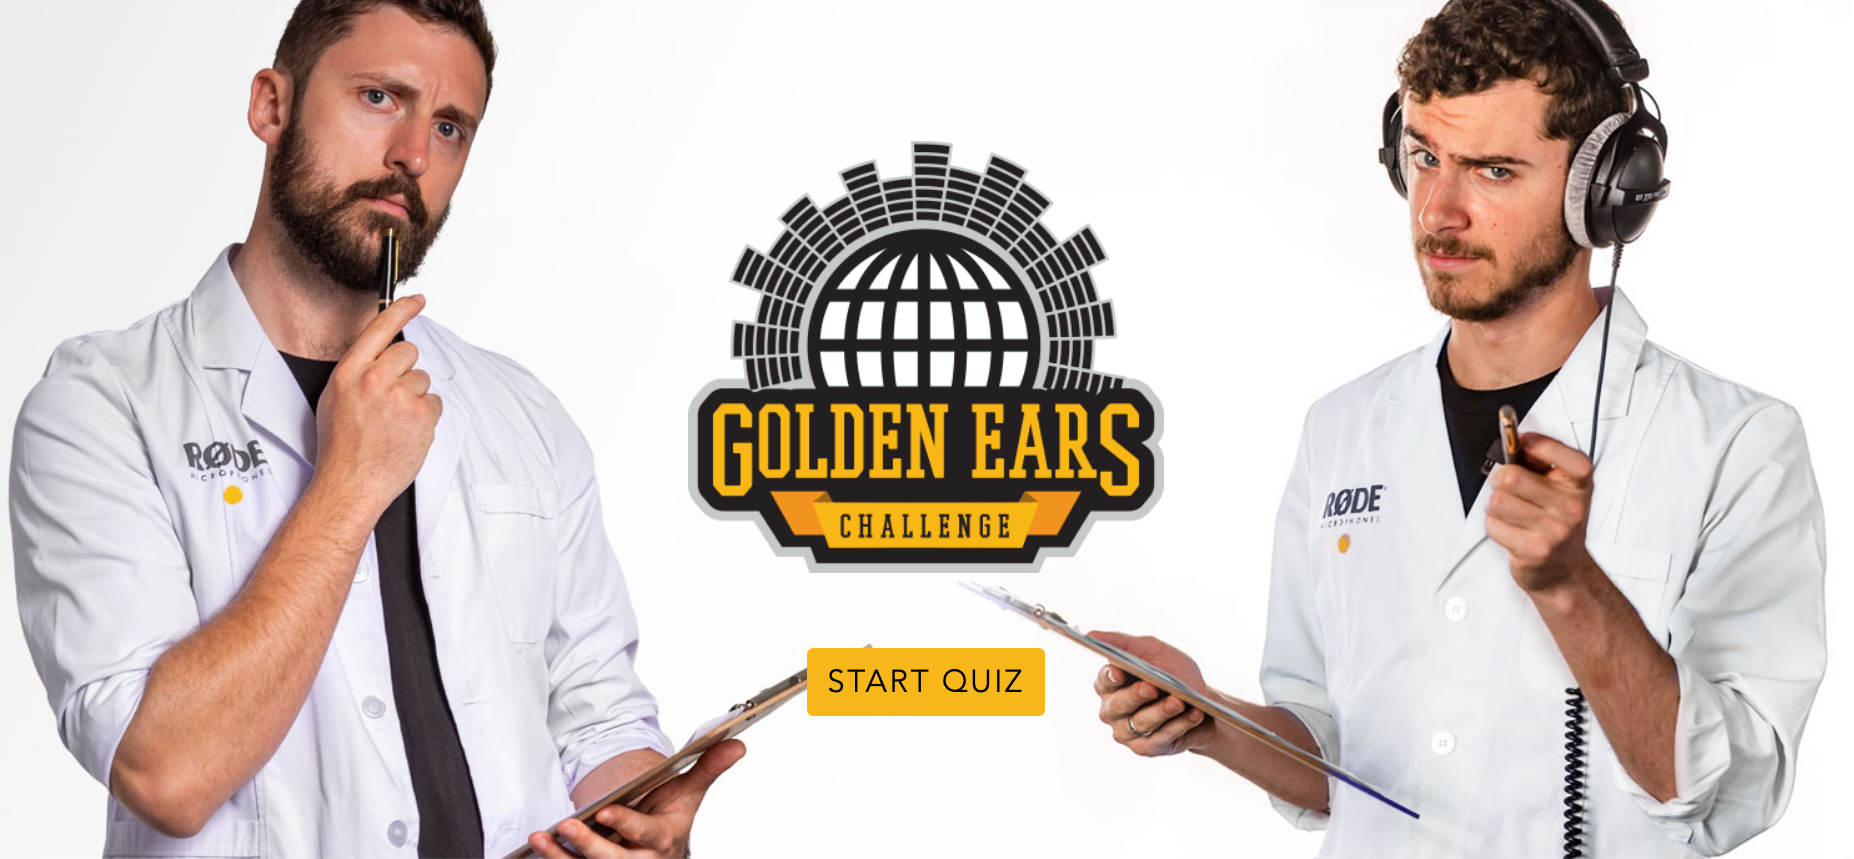 RØDE's 'Golden Ears' Challenge': Take the quiz and perhaps win 8